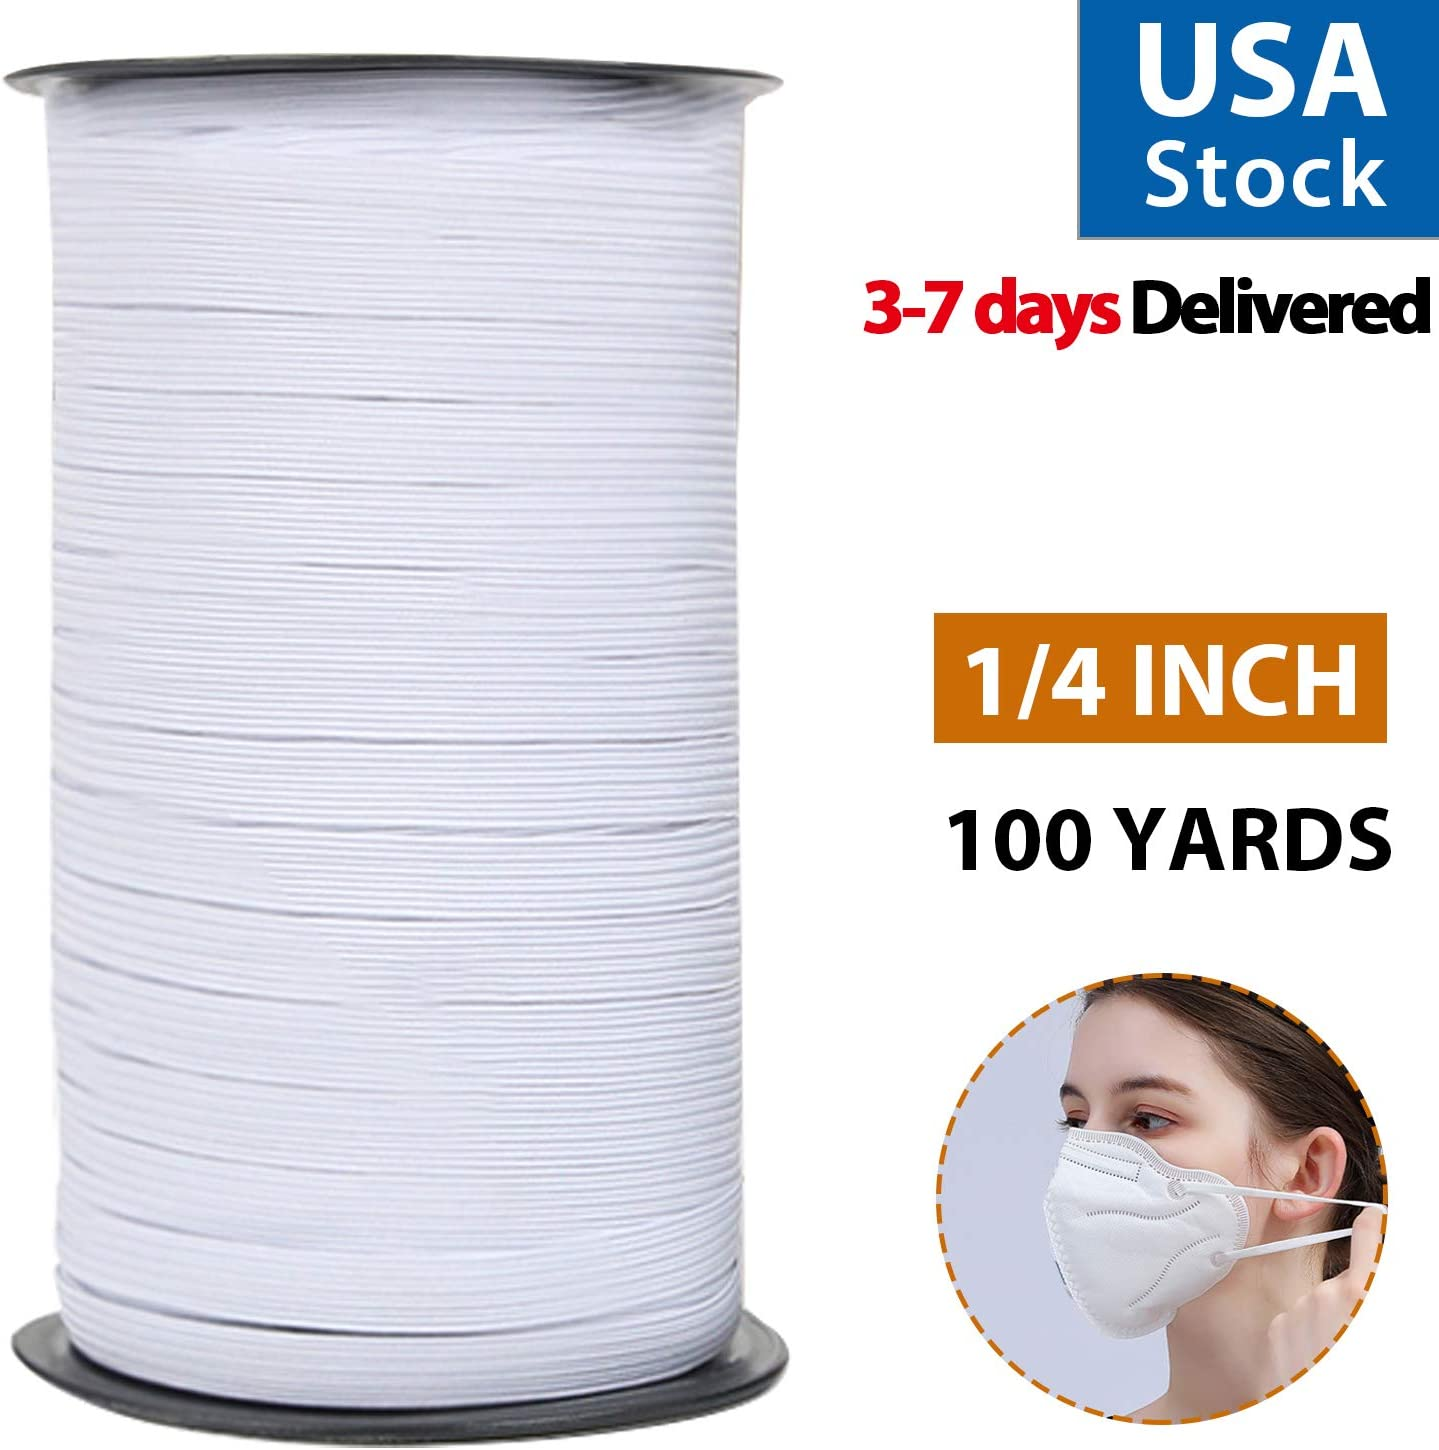 100 Yards 1//4 Inch Width Braided Elastic Band-Elastic Rope Bungee White Elastic Spool Elastic String Cord for DIY Sewing Crafts Weaving Bedspread Cuff and More